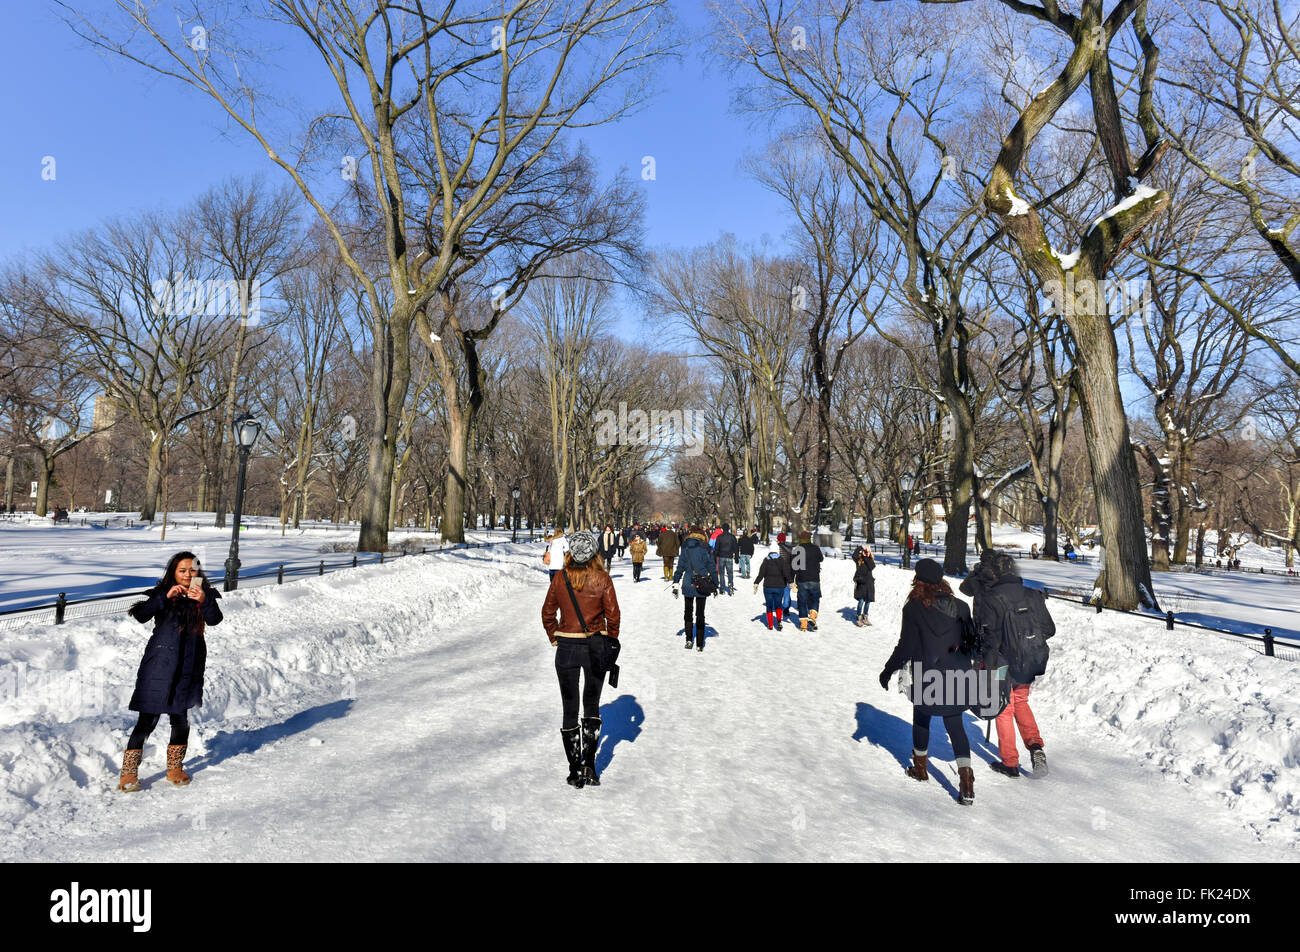 New York City - January 24, 2016: People exploring Central Park in New York City, following a major snowstorm in - Stock Image